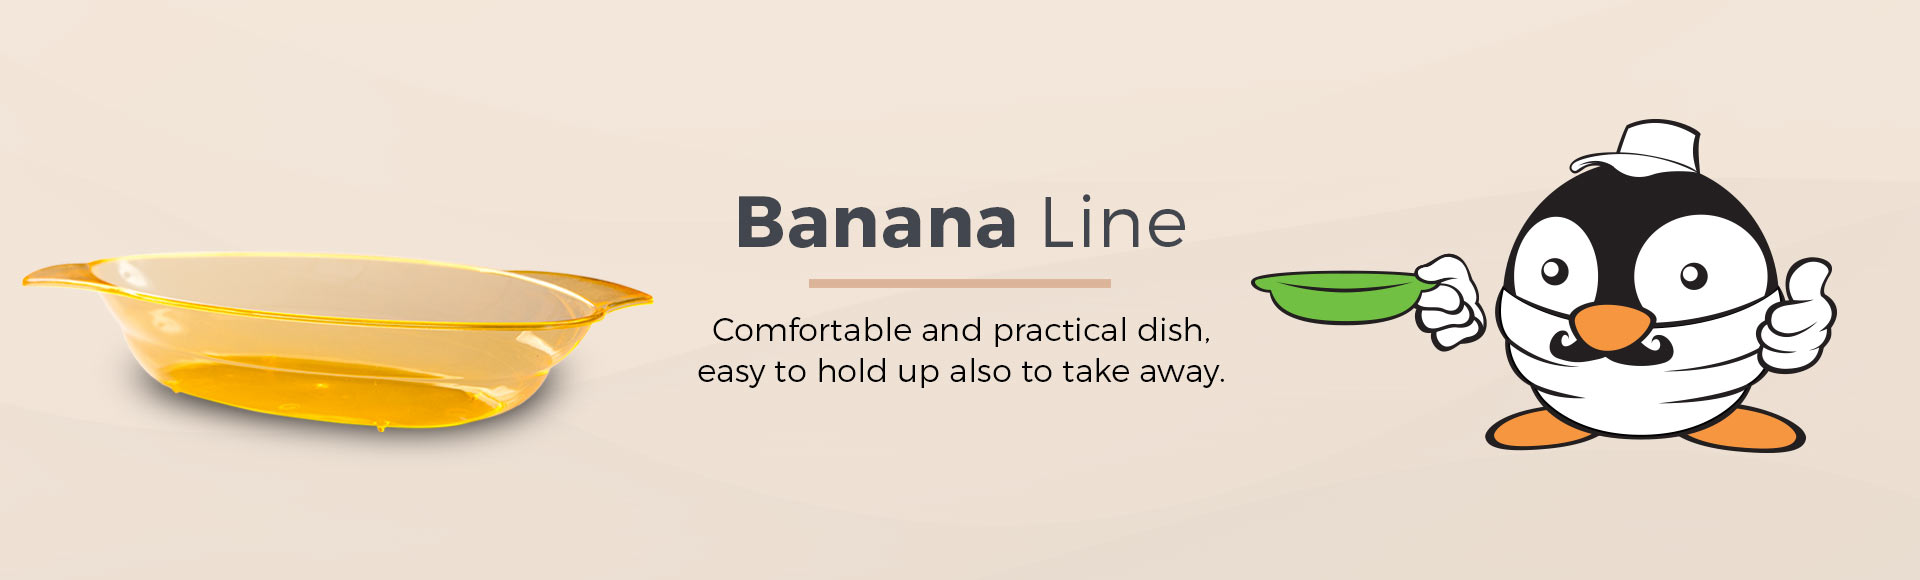 en-header-linea-banana